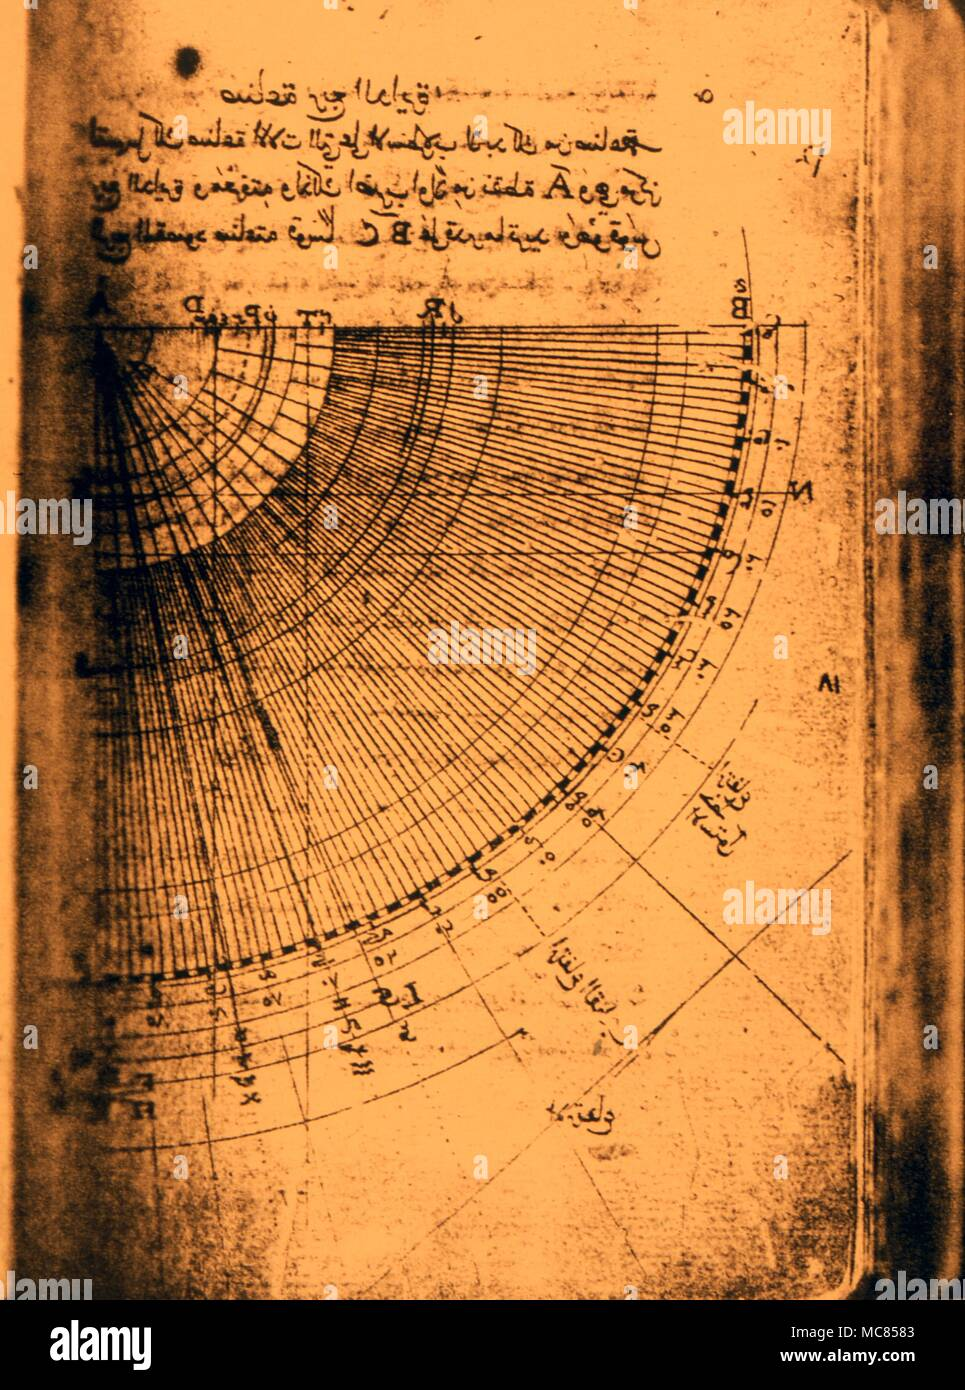 Astrology, astrolabes. 'The Book of Making an Astrolabe' an Arabic manuscript dated 1641, with interesting diagrams of the various components of the astrolabe. Lisbon, with text in Arabic and Latin Stock Photo